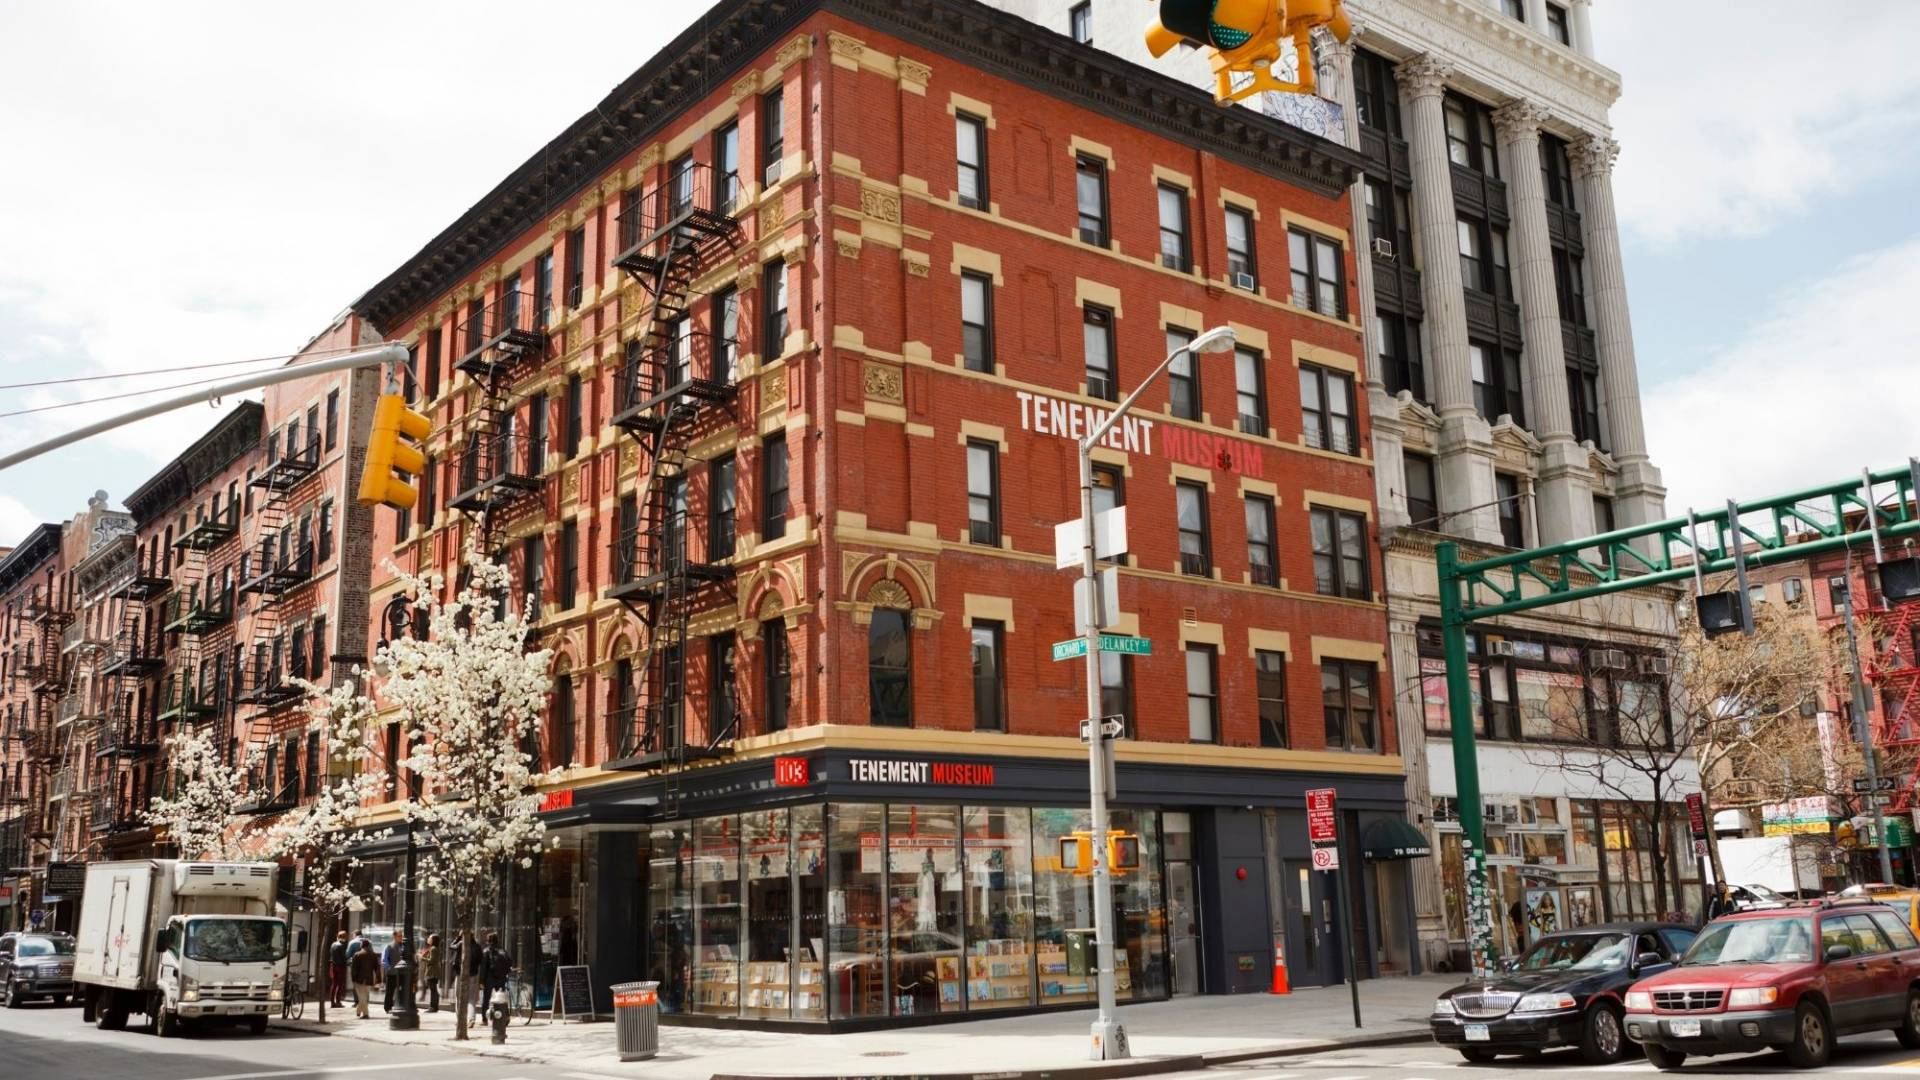 The Tenement Museum is a great place to start exploring New York City through a social justice lens and learn about the stories of the immigrants when they first arrived.